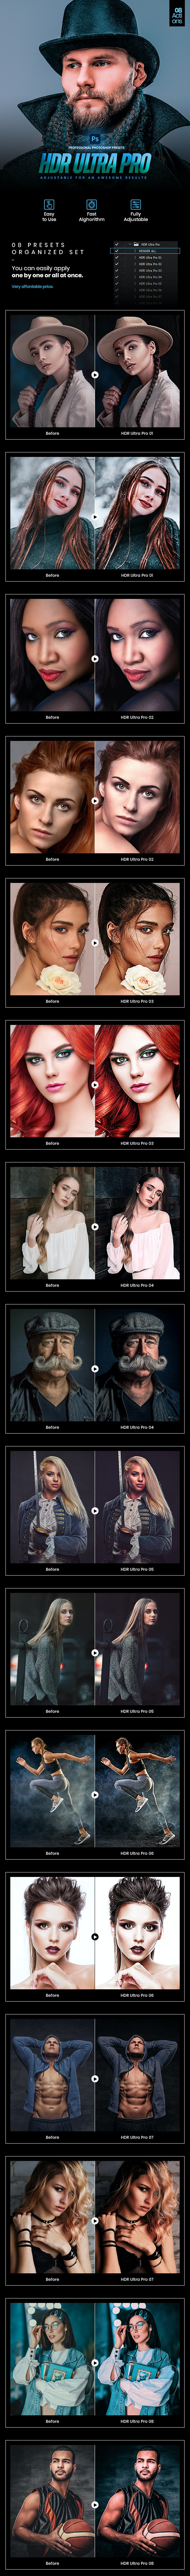 08 HDR Ultra Pro Photoshop Actions - Photo Effects Actions